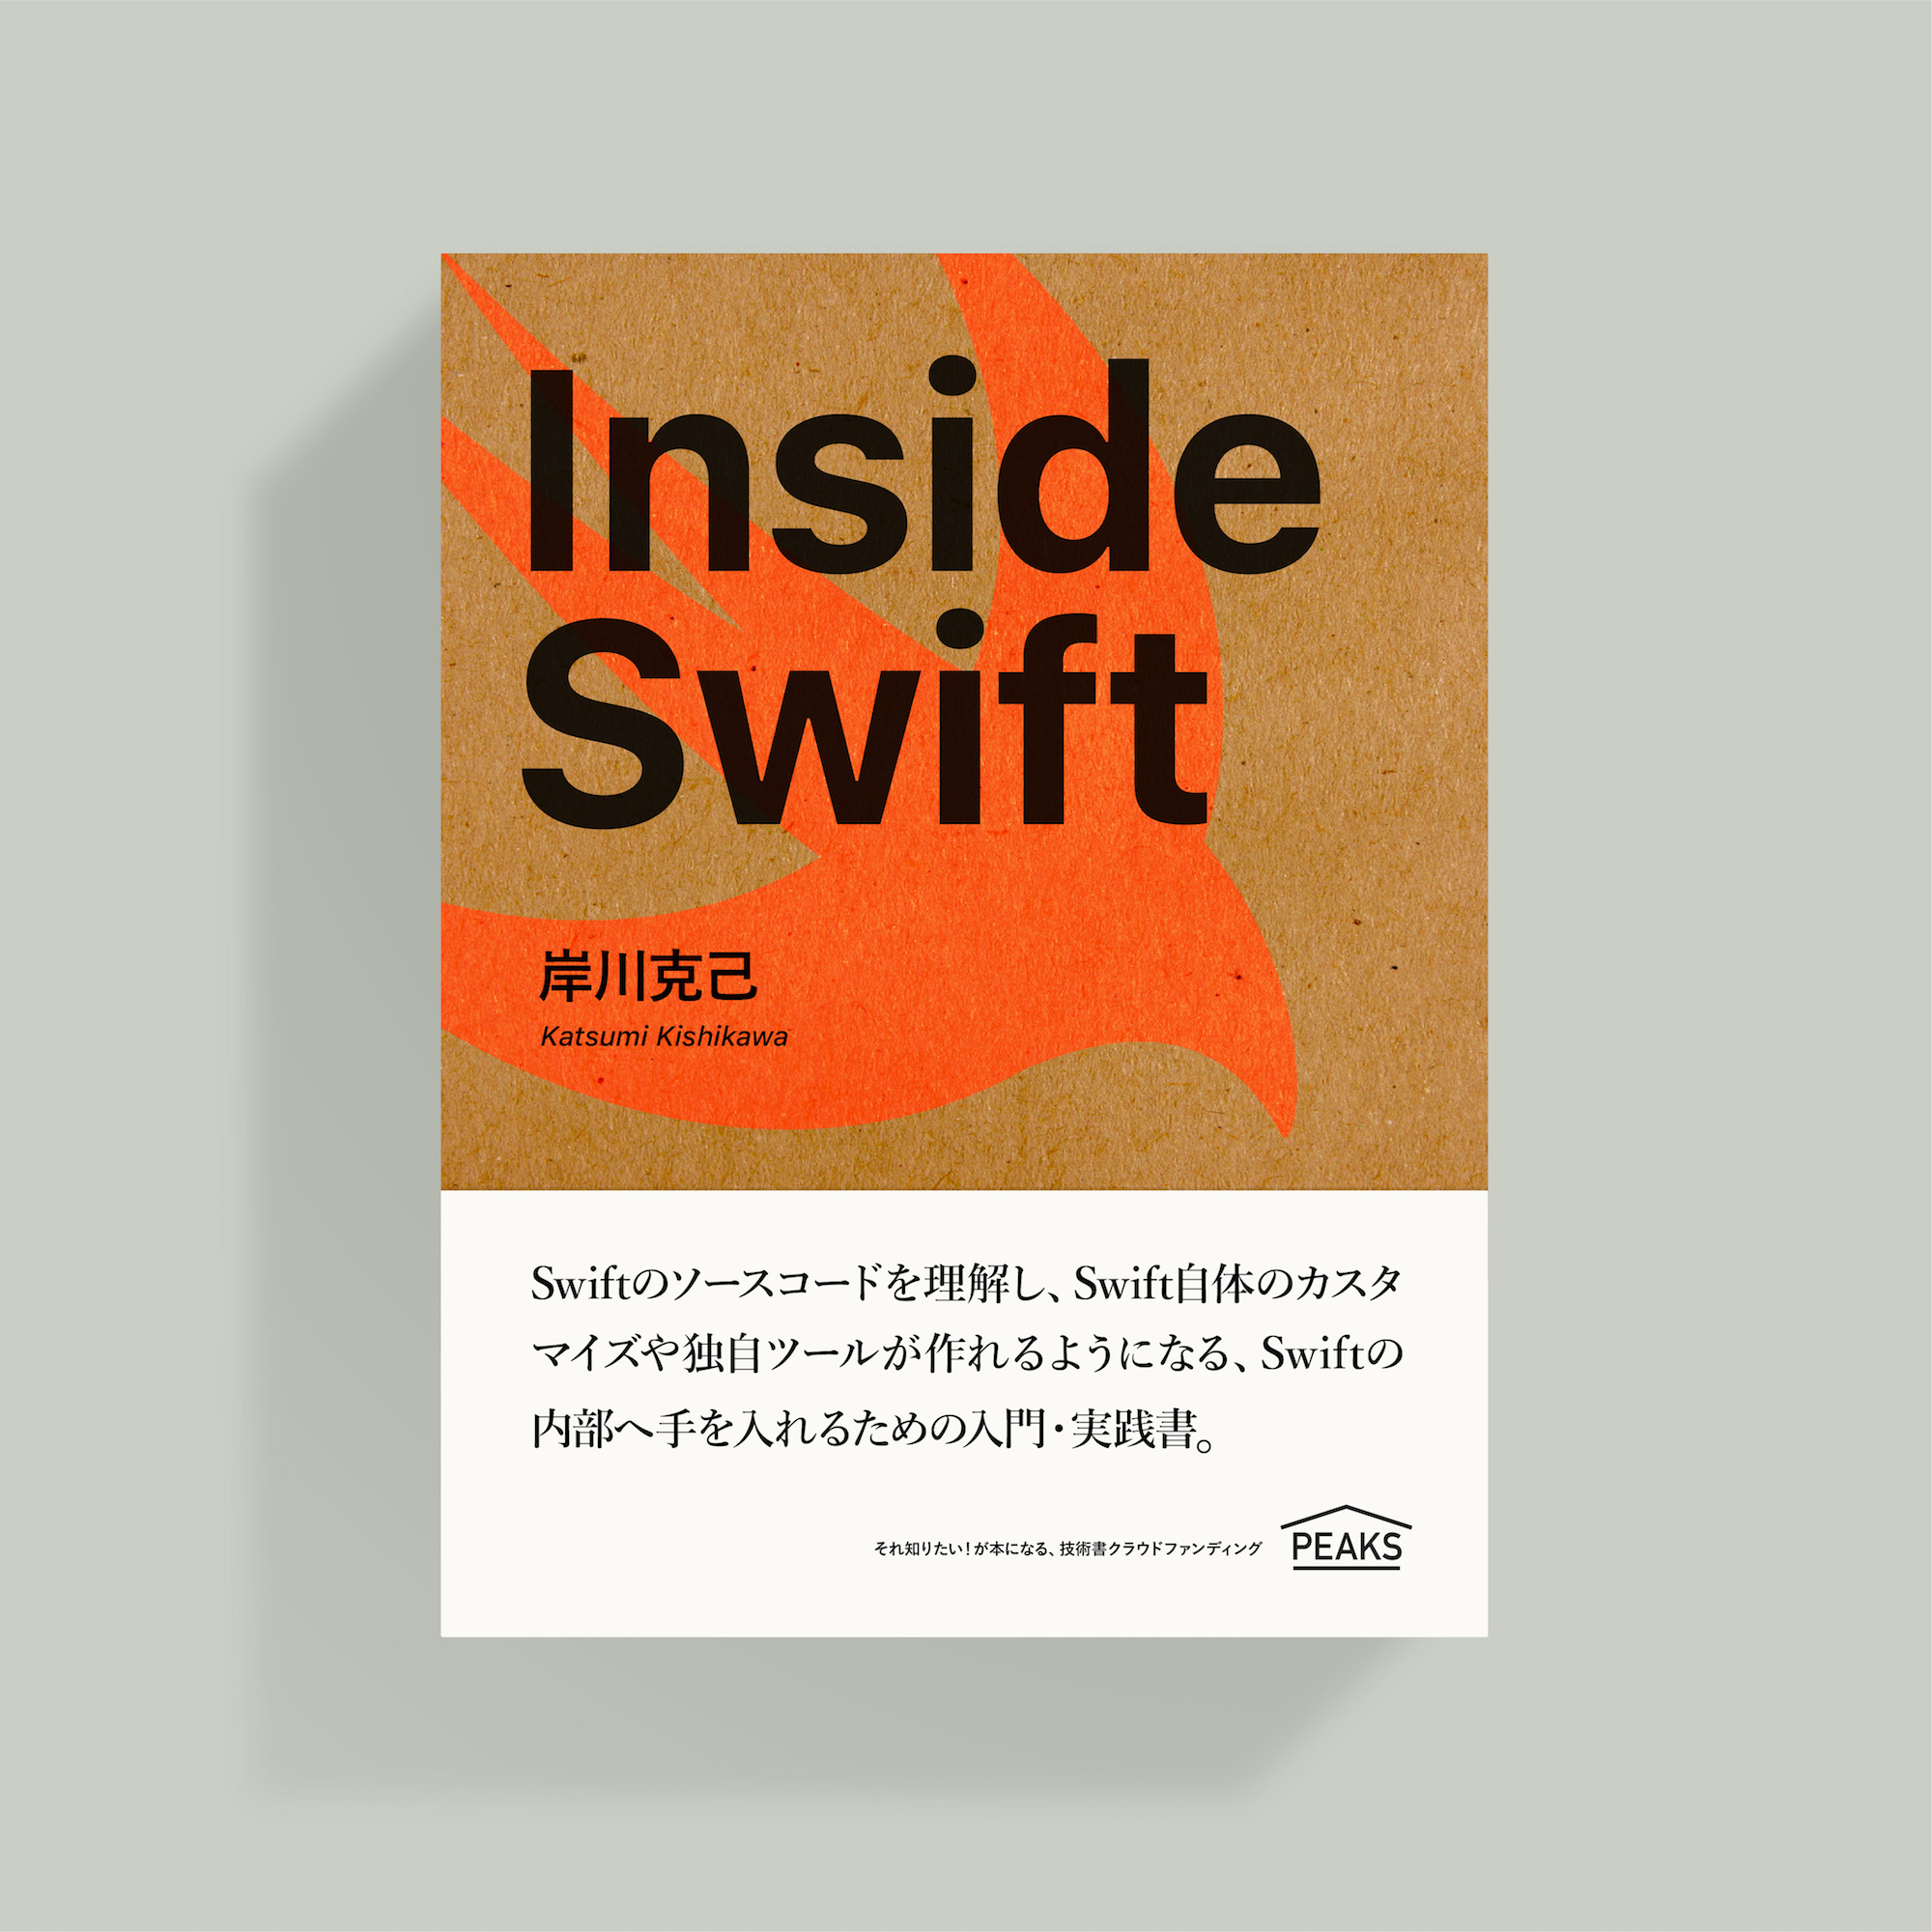 岸川克己 - Inside Swift